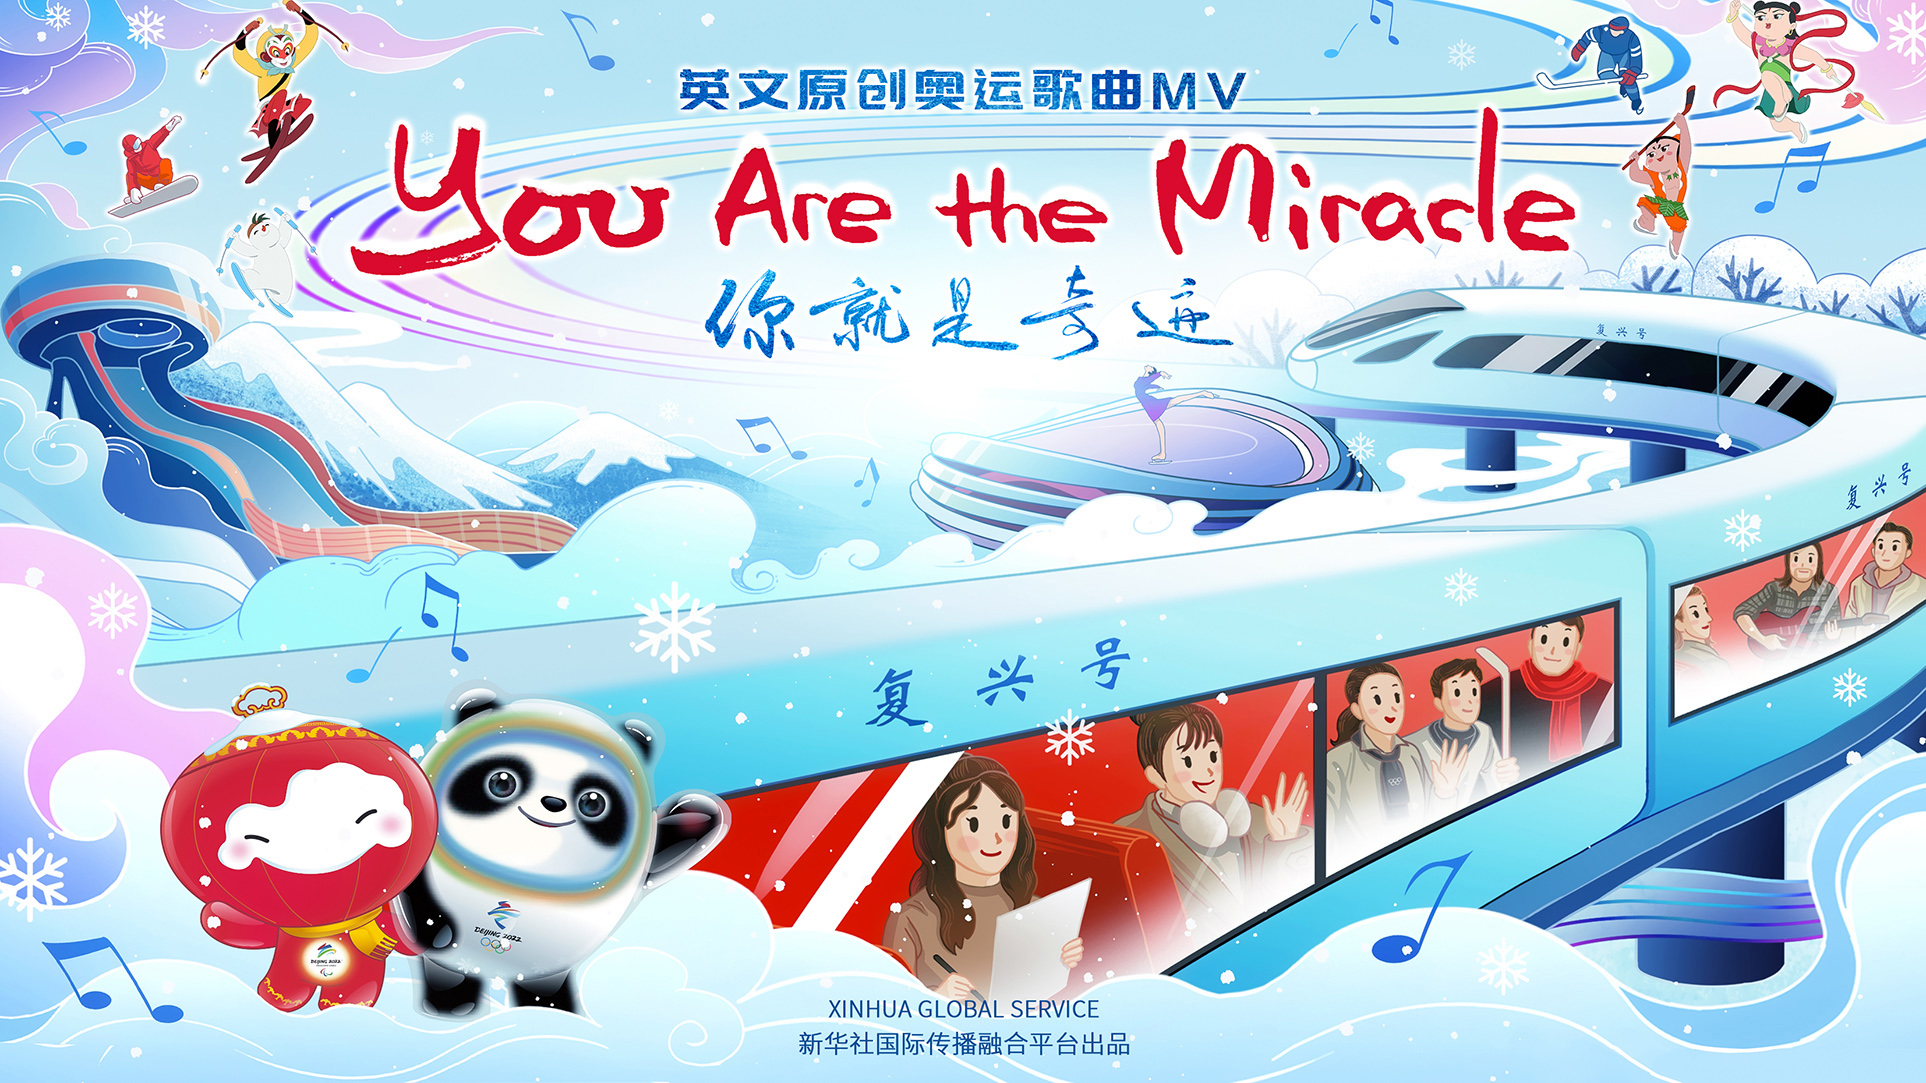 GLOBALink | A Winter Olympic Song - You Are The Miracle